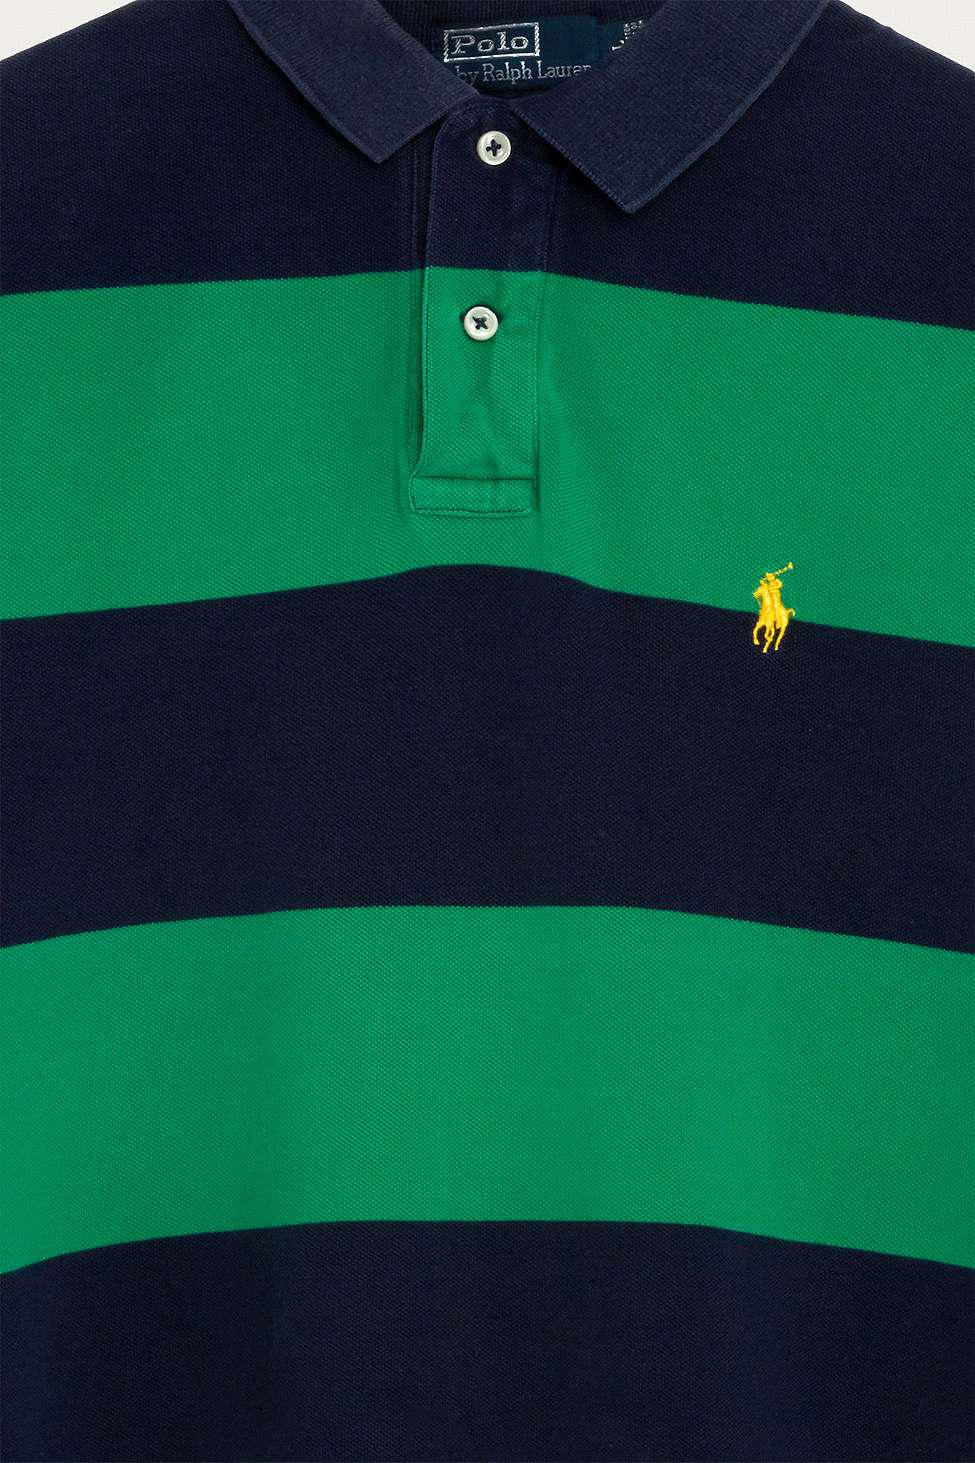 4ee673ce Urban Renewal Vintage One-of-a-kind Ralph Lauren Green And Blue ...